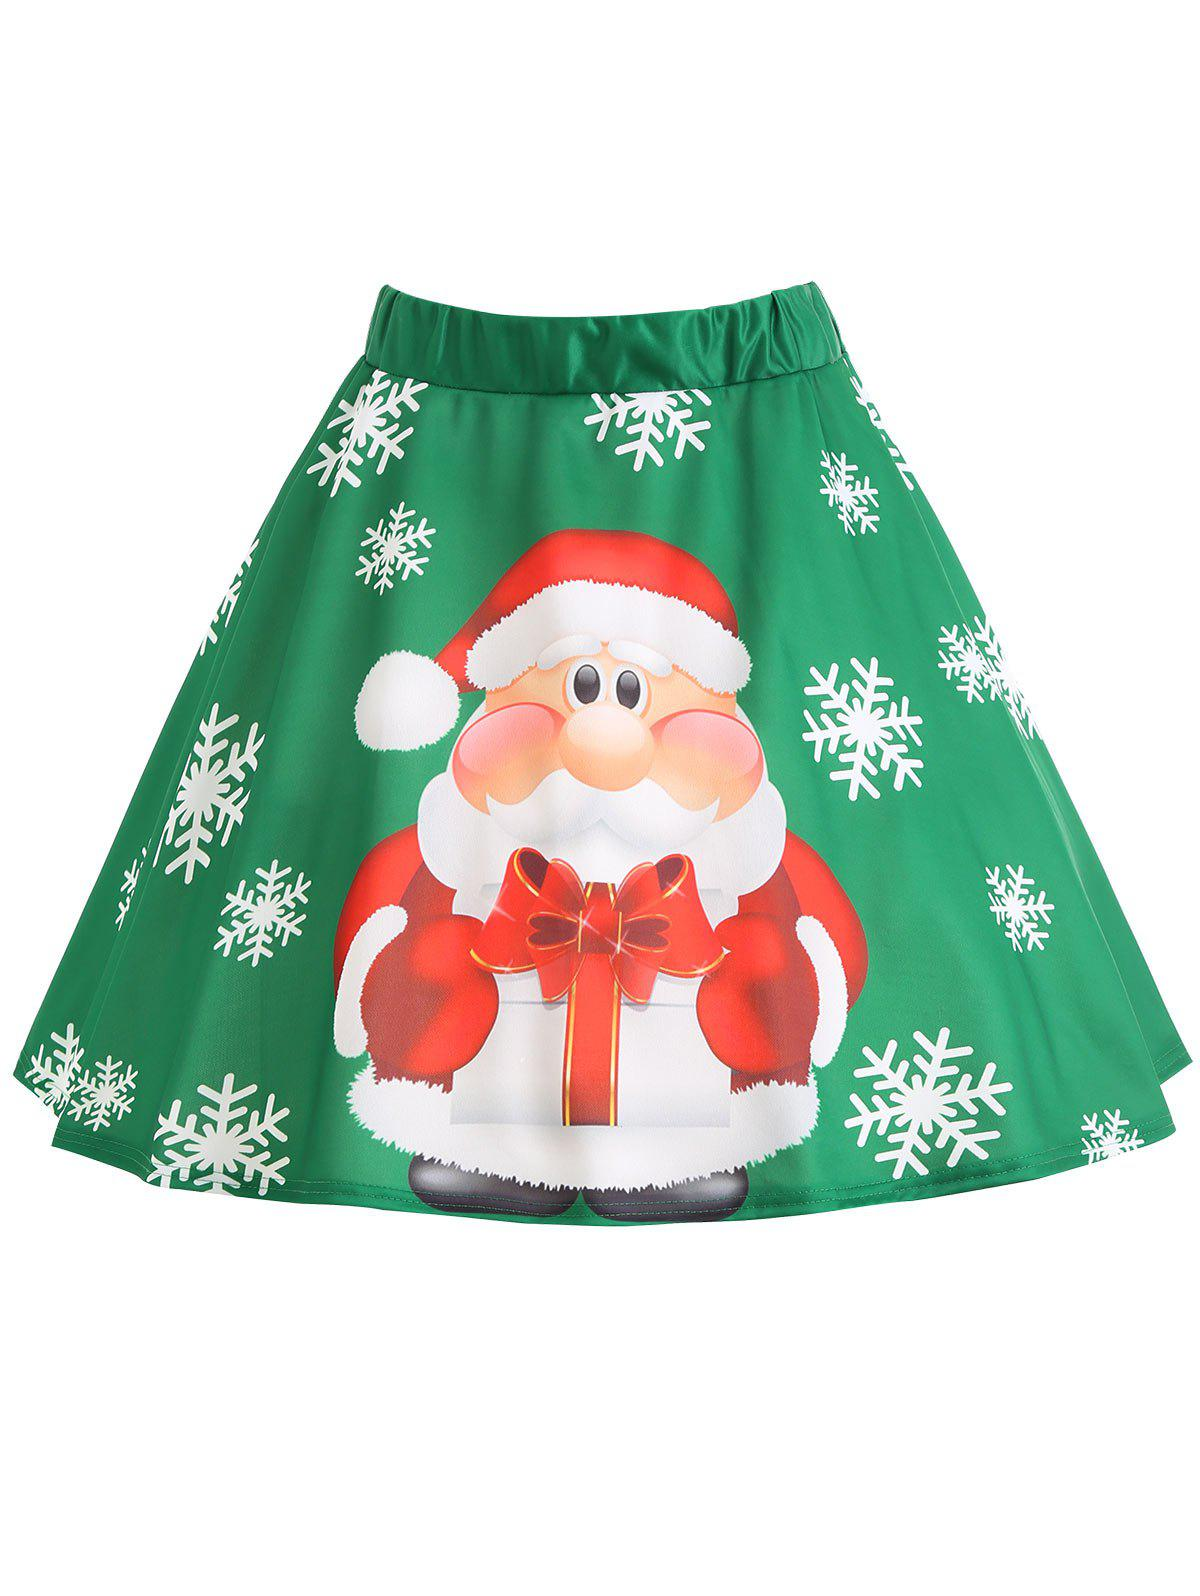 Plus Size Christmas Santa Claus Snowflake SkirtWOMEN<br><br>Size: XL; Color: GREEN; Material: Polyester; Length: Mini; Silhouette: A-Line; Pattern Type: Print; Season: Winter; With Belt: No; Weight: 0.2600kg; Package Contents: 1 x Skirt;